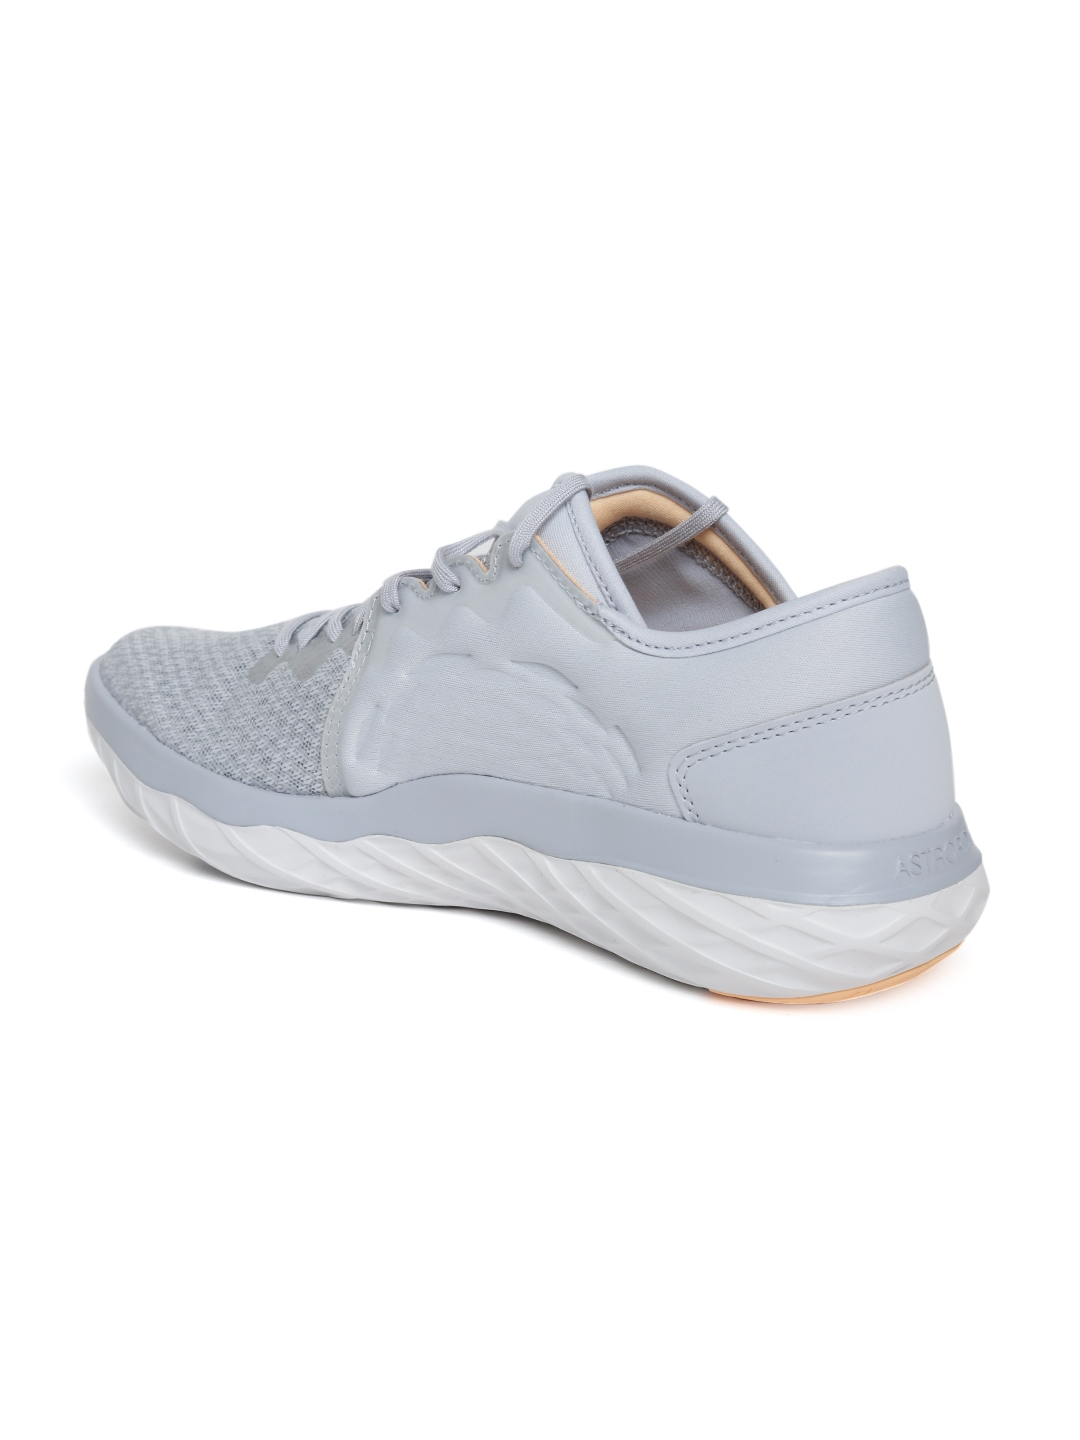 df08e7aaff0 Buy Reebok Women Grey Astroride Forever Running Shoes - Sports Shoes ...